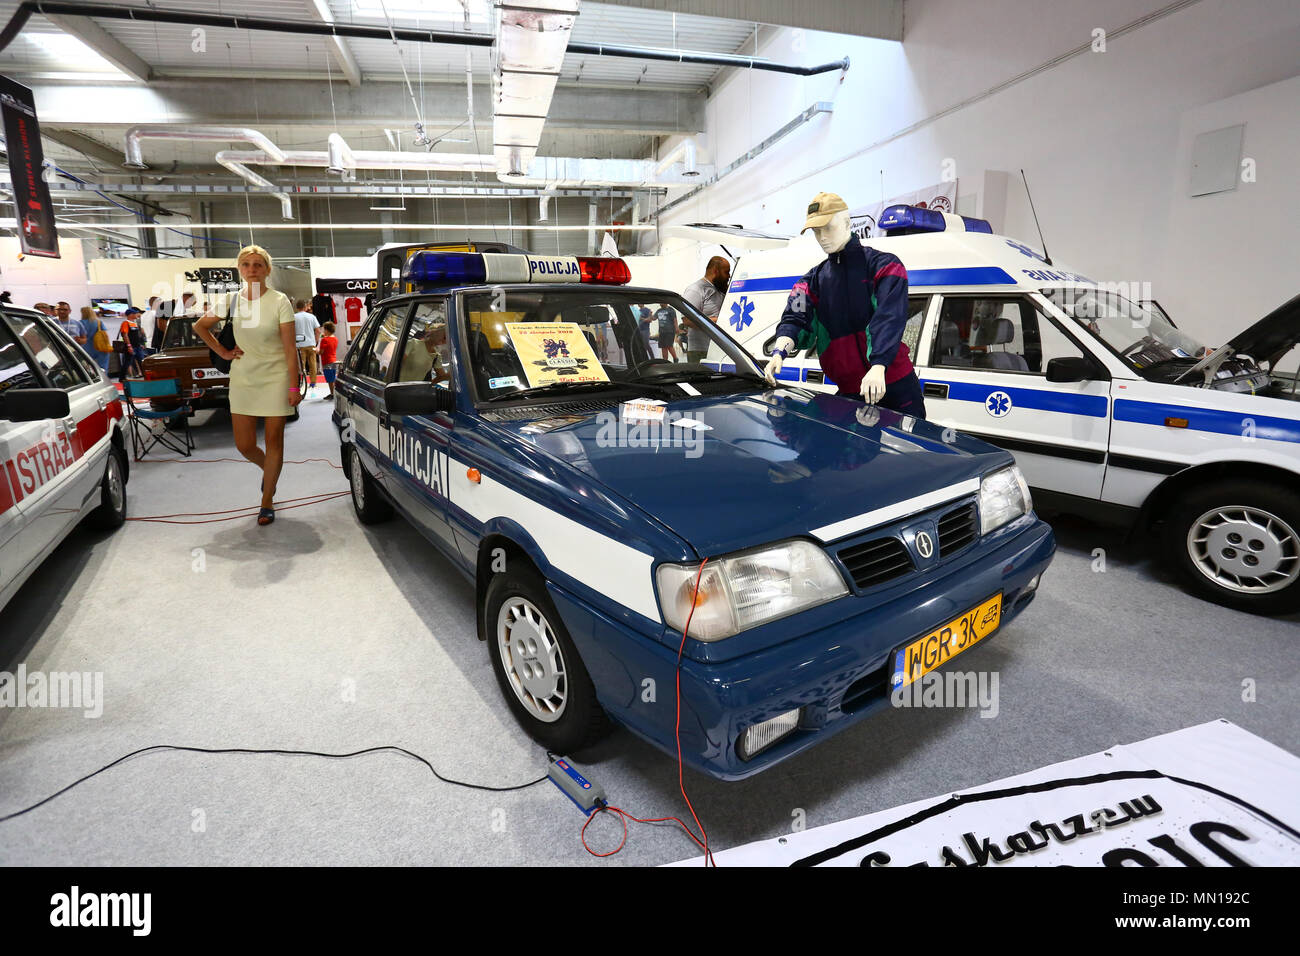 Poland, Nadarzyn, 13th May 2018: PTAK expo center second day of Oldtimer Show. ©Madeleine Ratz/Alamy Live News - Stock Image